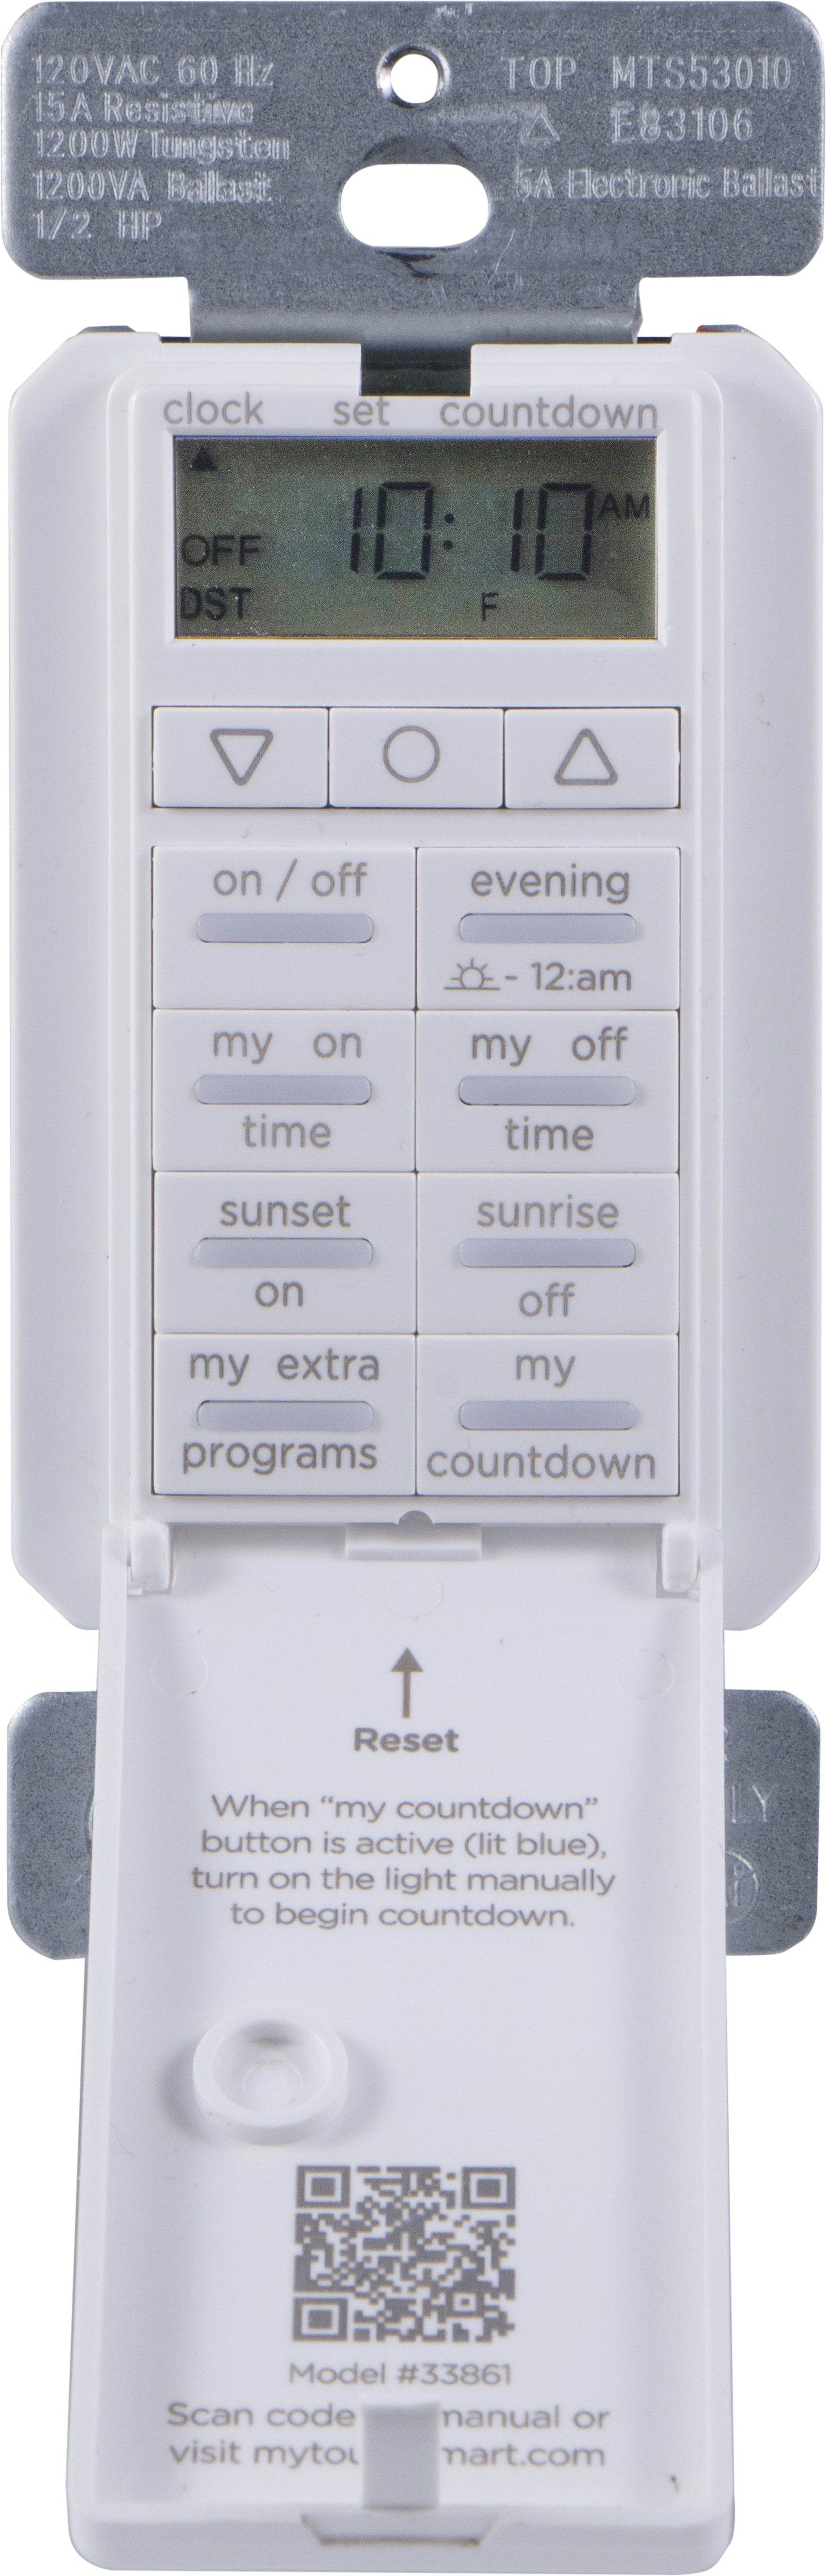 myTouchSmart All-in-One In-Wall Digital Countdown Timer, 33861 by Jasco Products Company, LLC